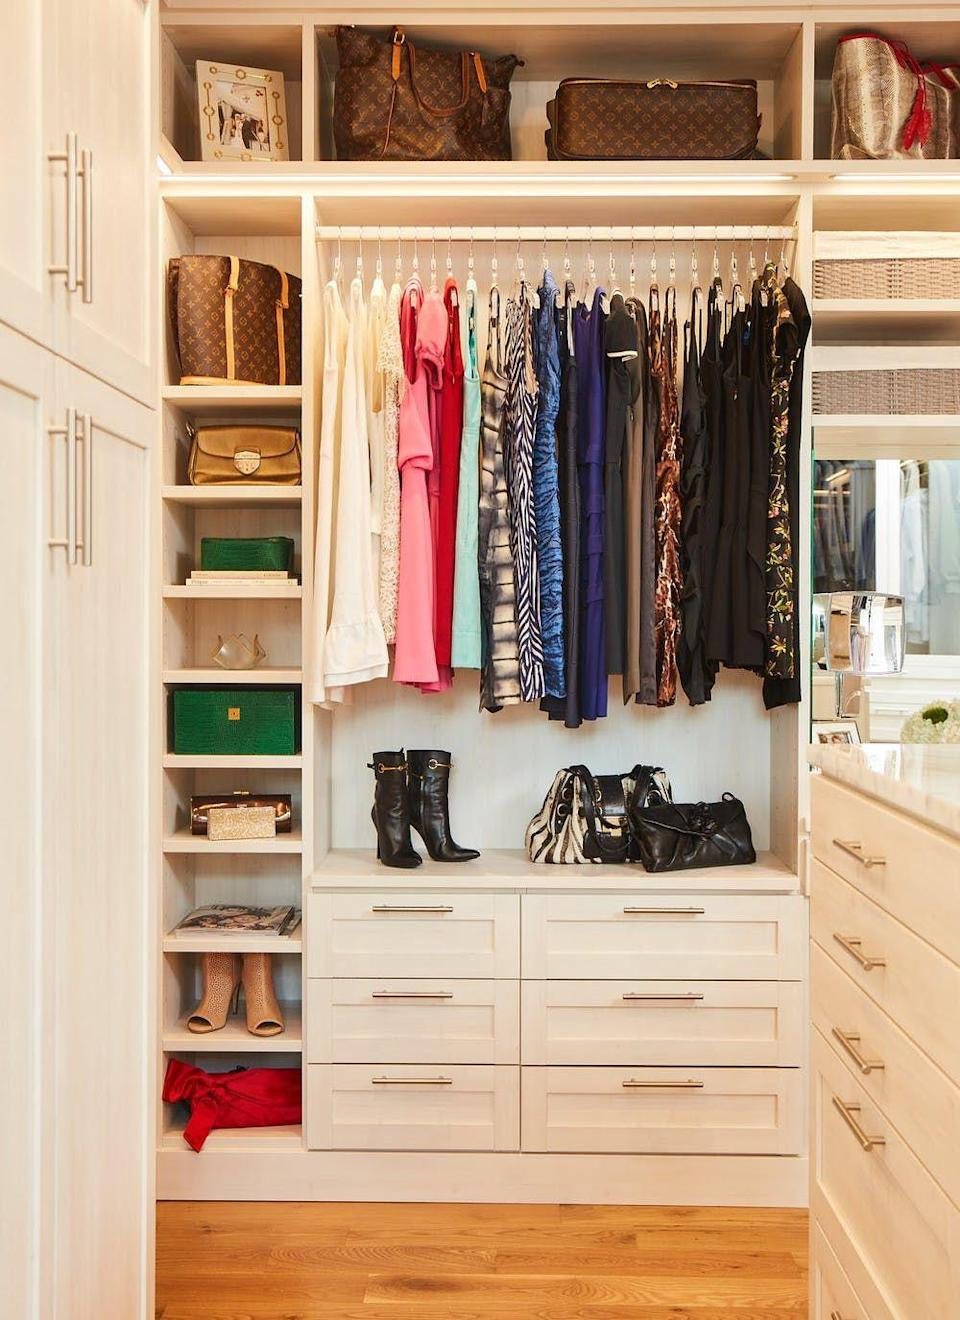 "<p>Double your closet's storage potential by raising the top clothing rod above standard height to free up usable space below. Install drawers or bring in a freestanding dresser to fake a built-in look. </p><p>See more at <a href=""https://go.redirectingat.com?id=74968X1596630&url=https%3A%2F%2Fwww.containerstore.com%2Fblog%2Fposts%2Fmaster-laren-closet-by-a-master-organizer&sref=https%3A%2F%2Fwww.oprahmag.com%2Flife%2Fg29994972%2Fbest-closet-organizer-ideas%2F"" rel=""nofollow noopener"" target=""_blank"" data-ylk=""slk:Container Stories"" class=""link rapid-noclick-resp"">Container Stories</a>. </p>"